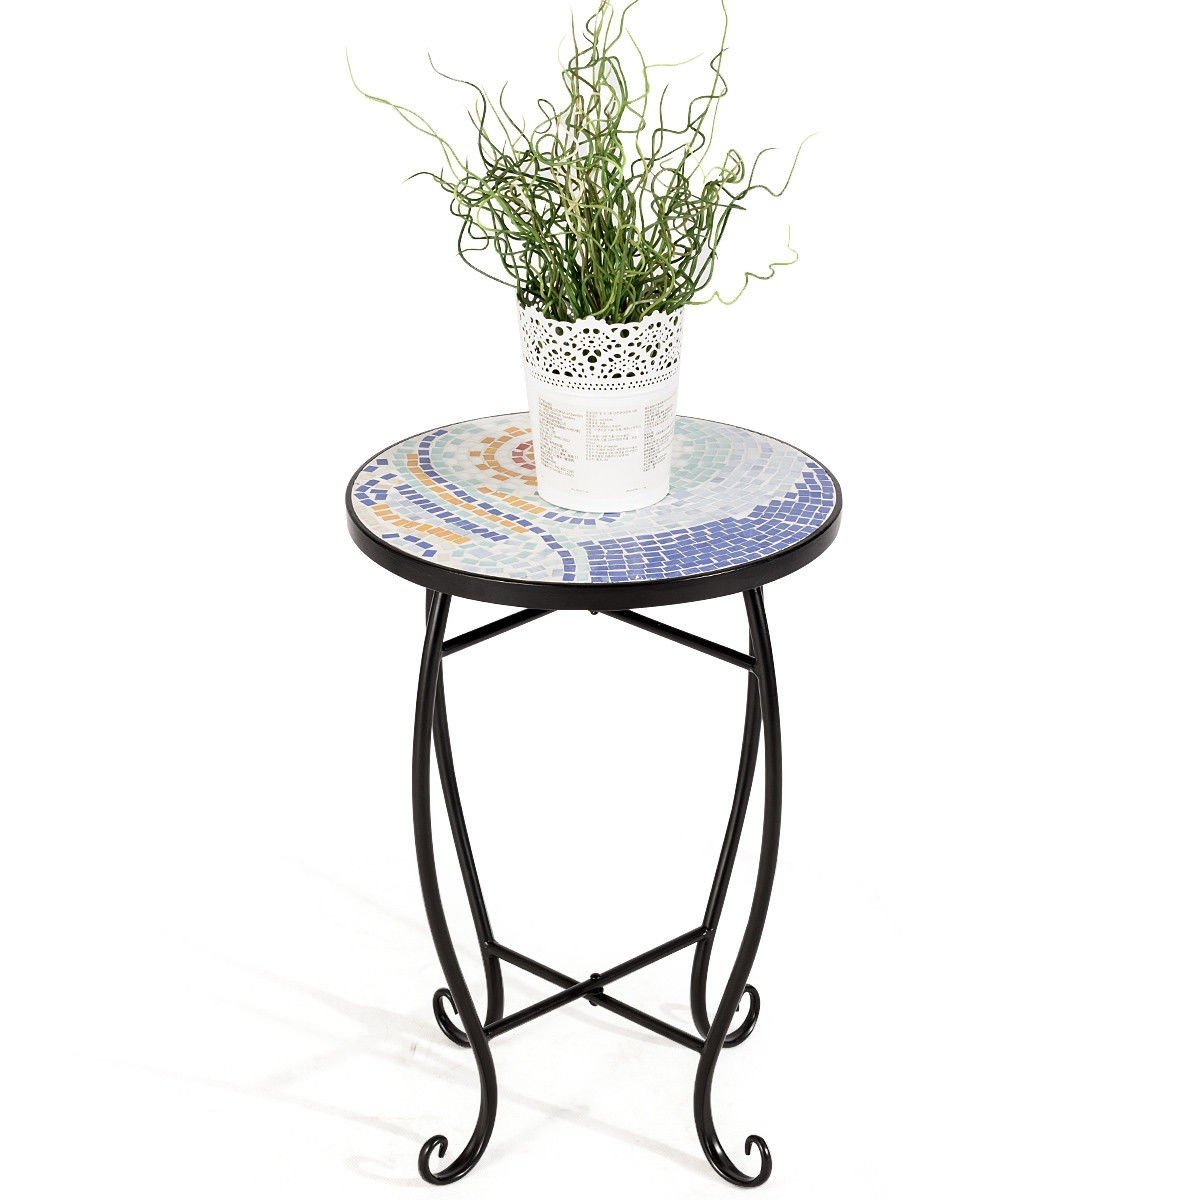 custpromo mosaic accent table metal round side bella green outdoor plant stand with cobalt glass top indoor garden patio ocean wave kitchen small half inexpensive home decor